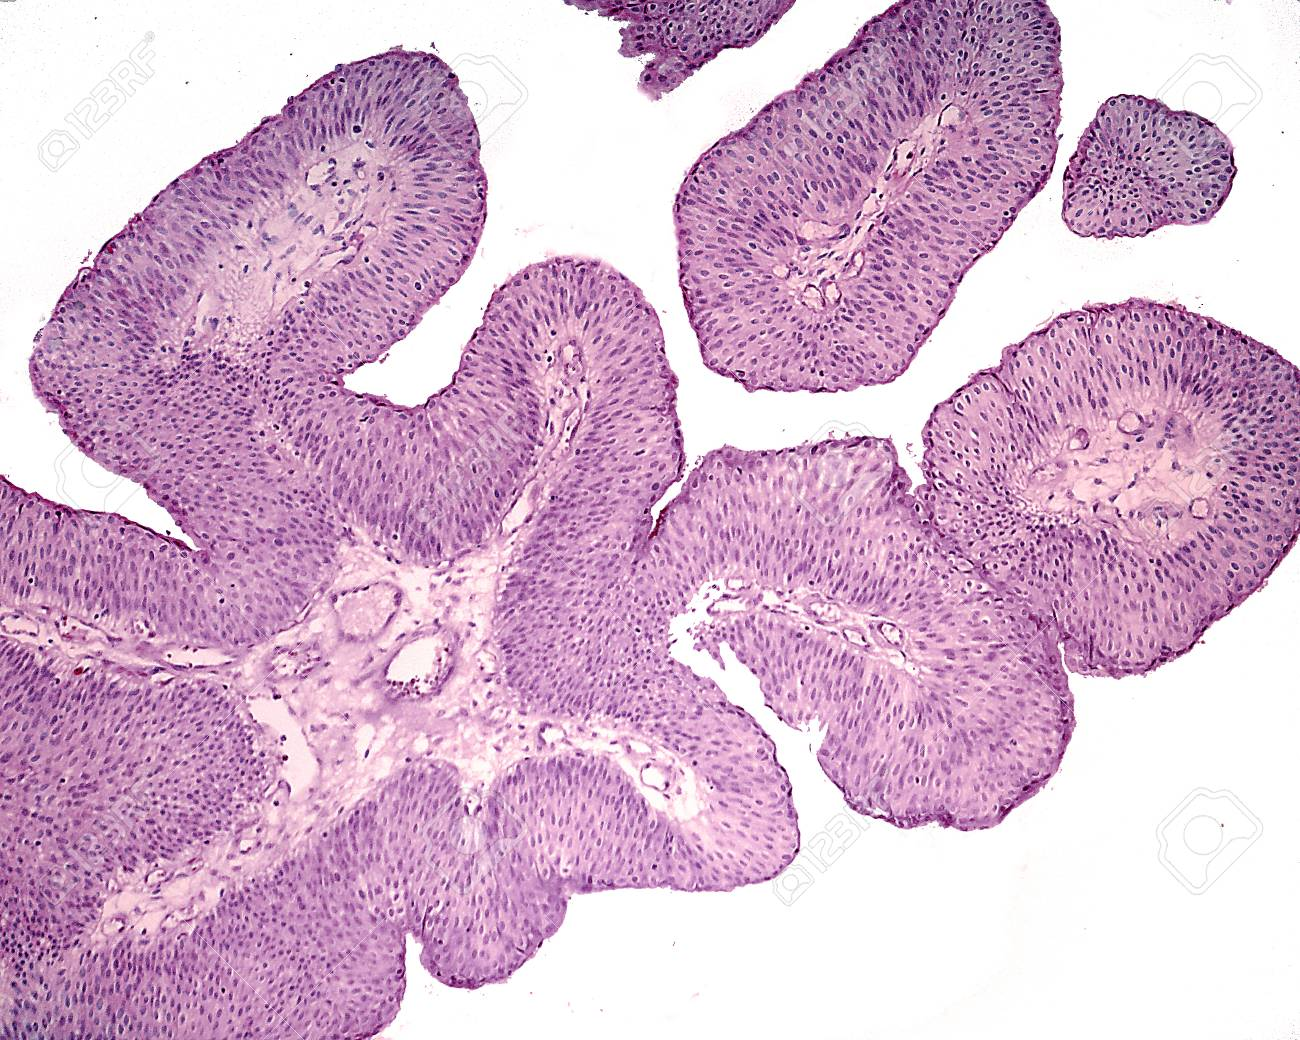 papilloma of the bladder